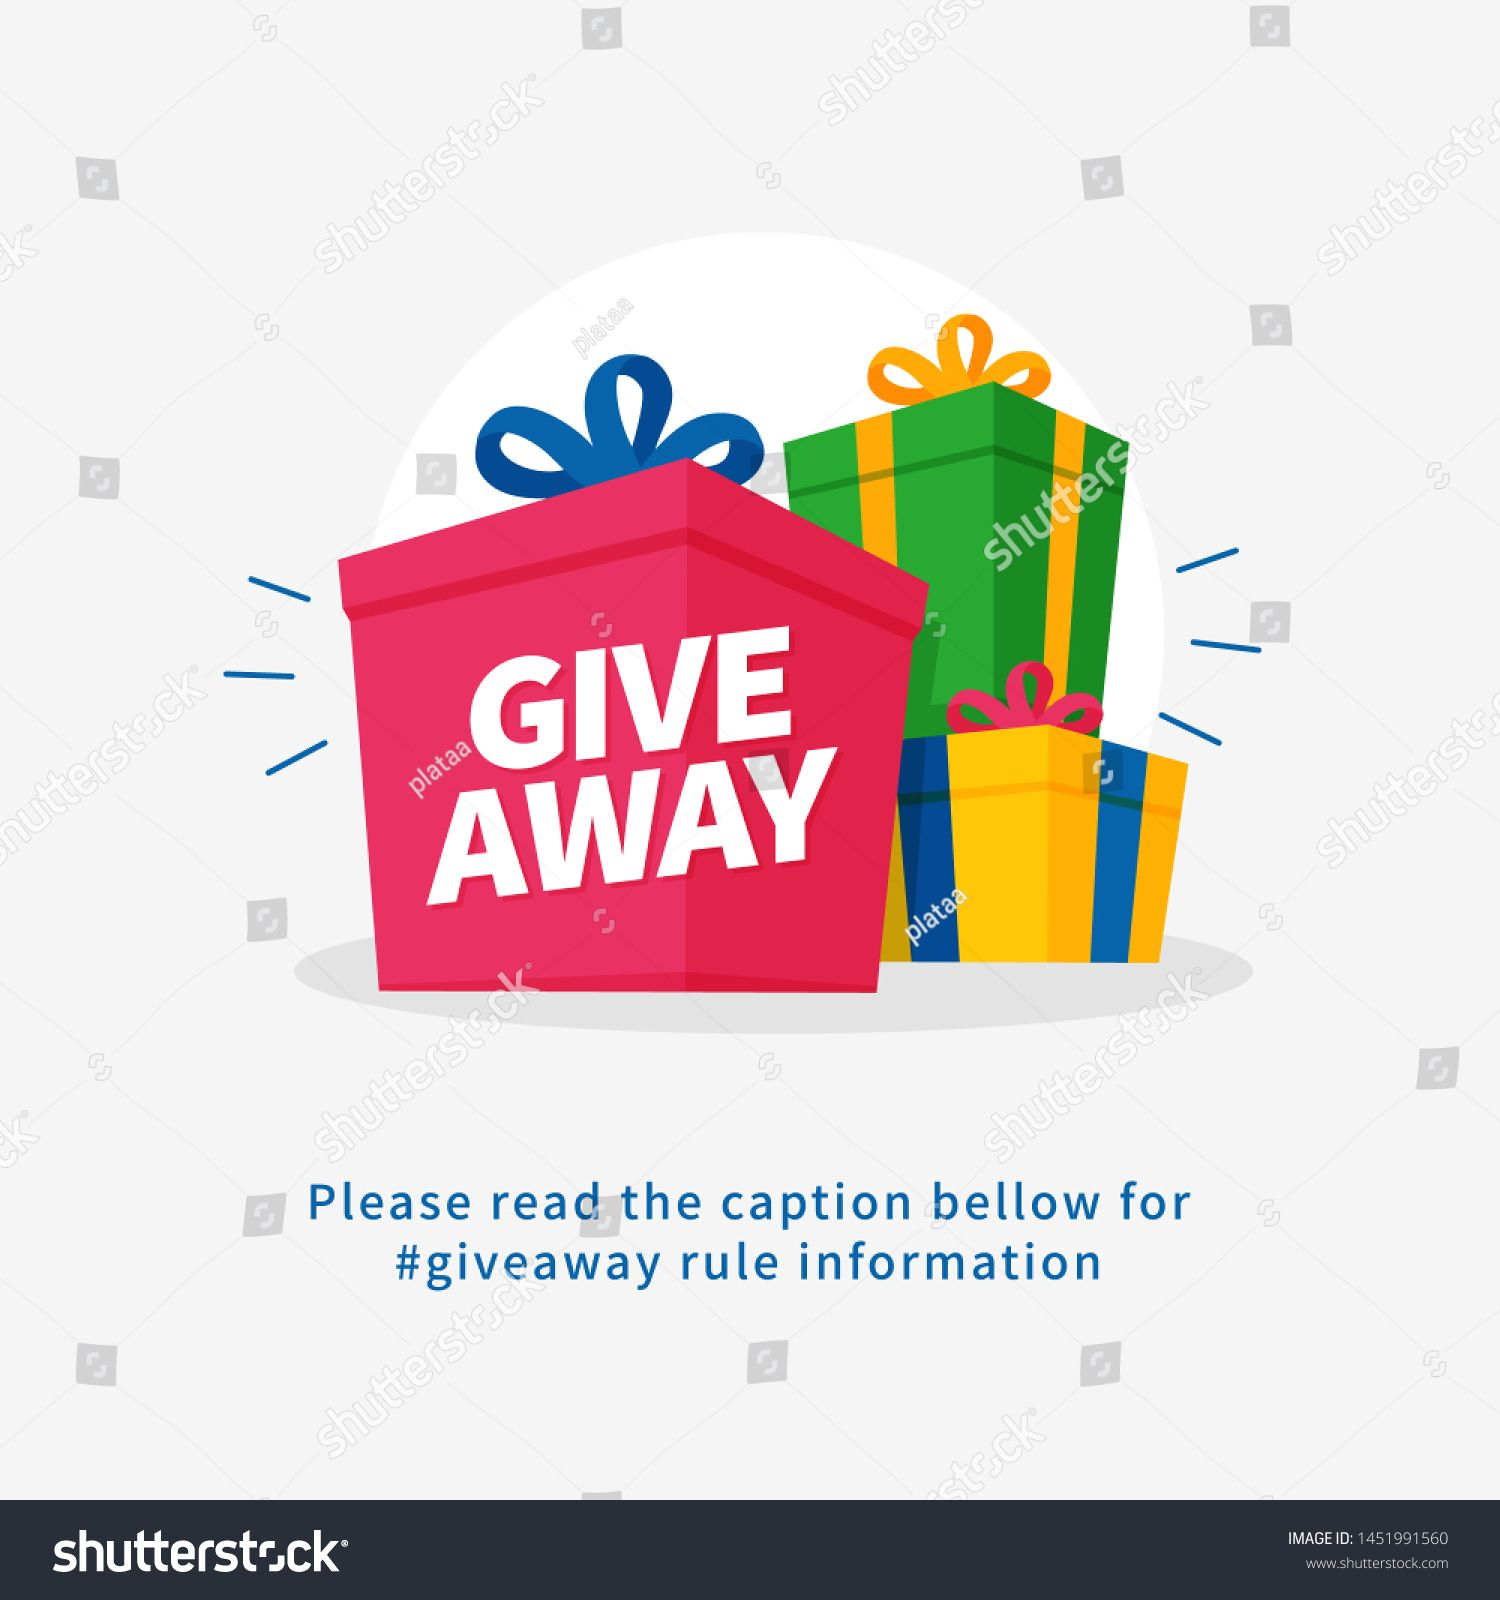 Giveaway Poster For Social Media Post Graphic Template Many Gift Box Vector Illustration For Share Happines Event Poster Design Social Media Post Social Media